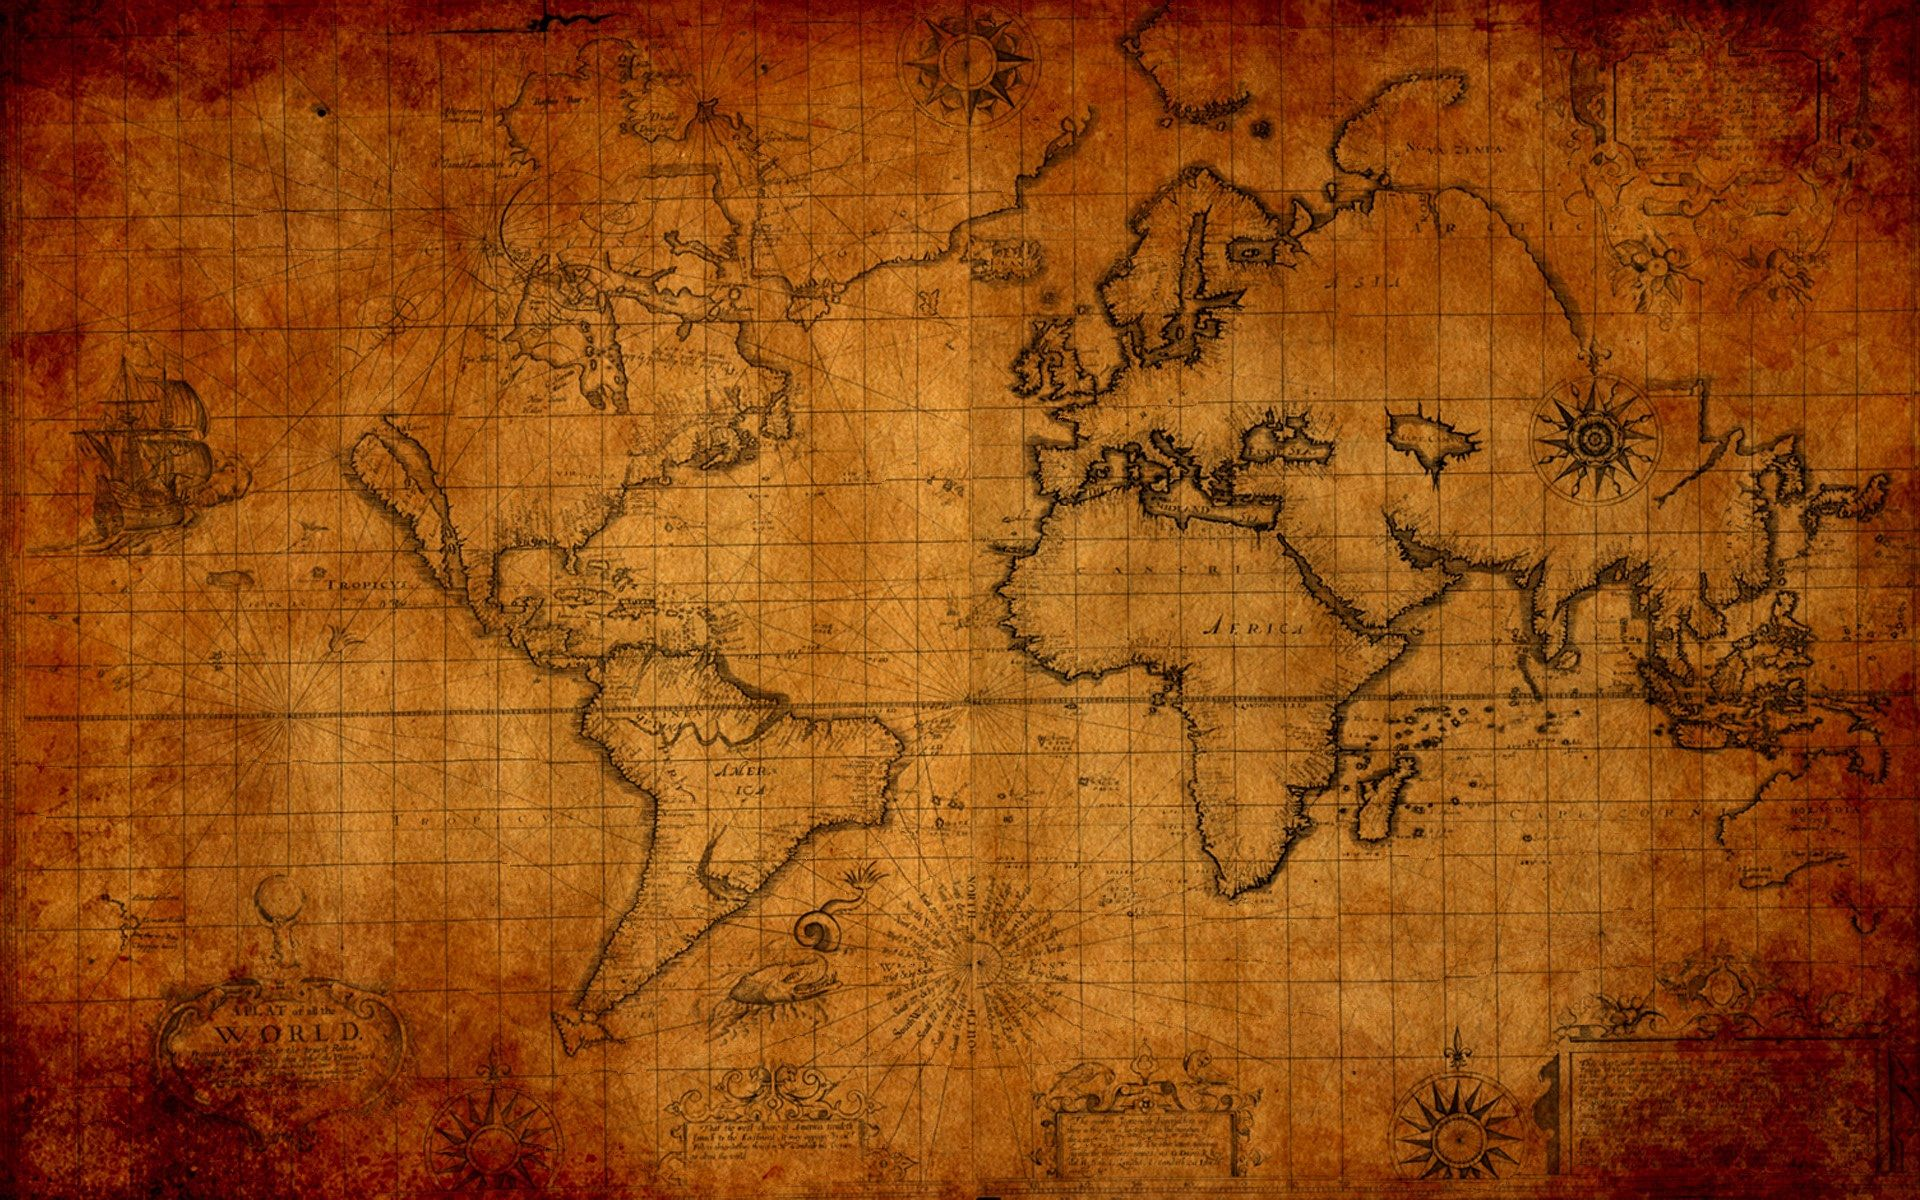 old world map digital art hd desktop wallpaper earth wallpaper map wallpaper digital art no